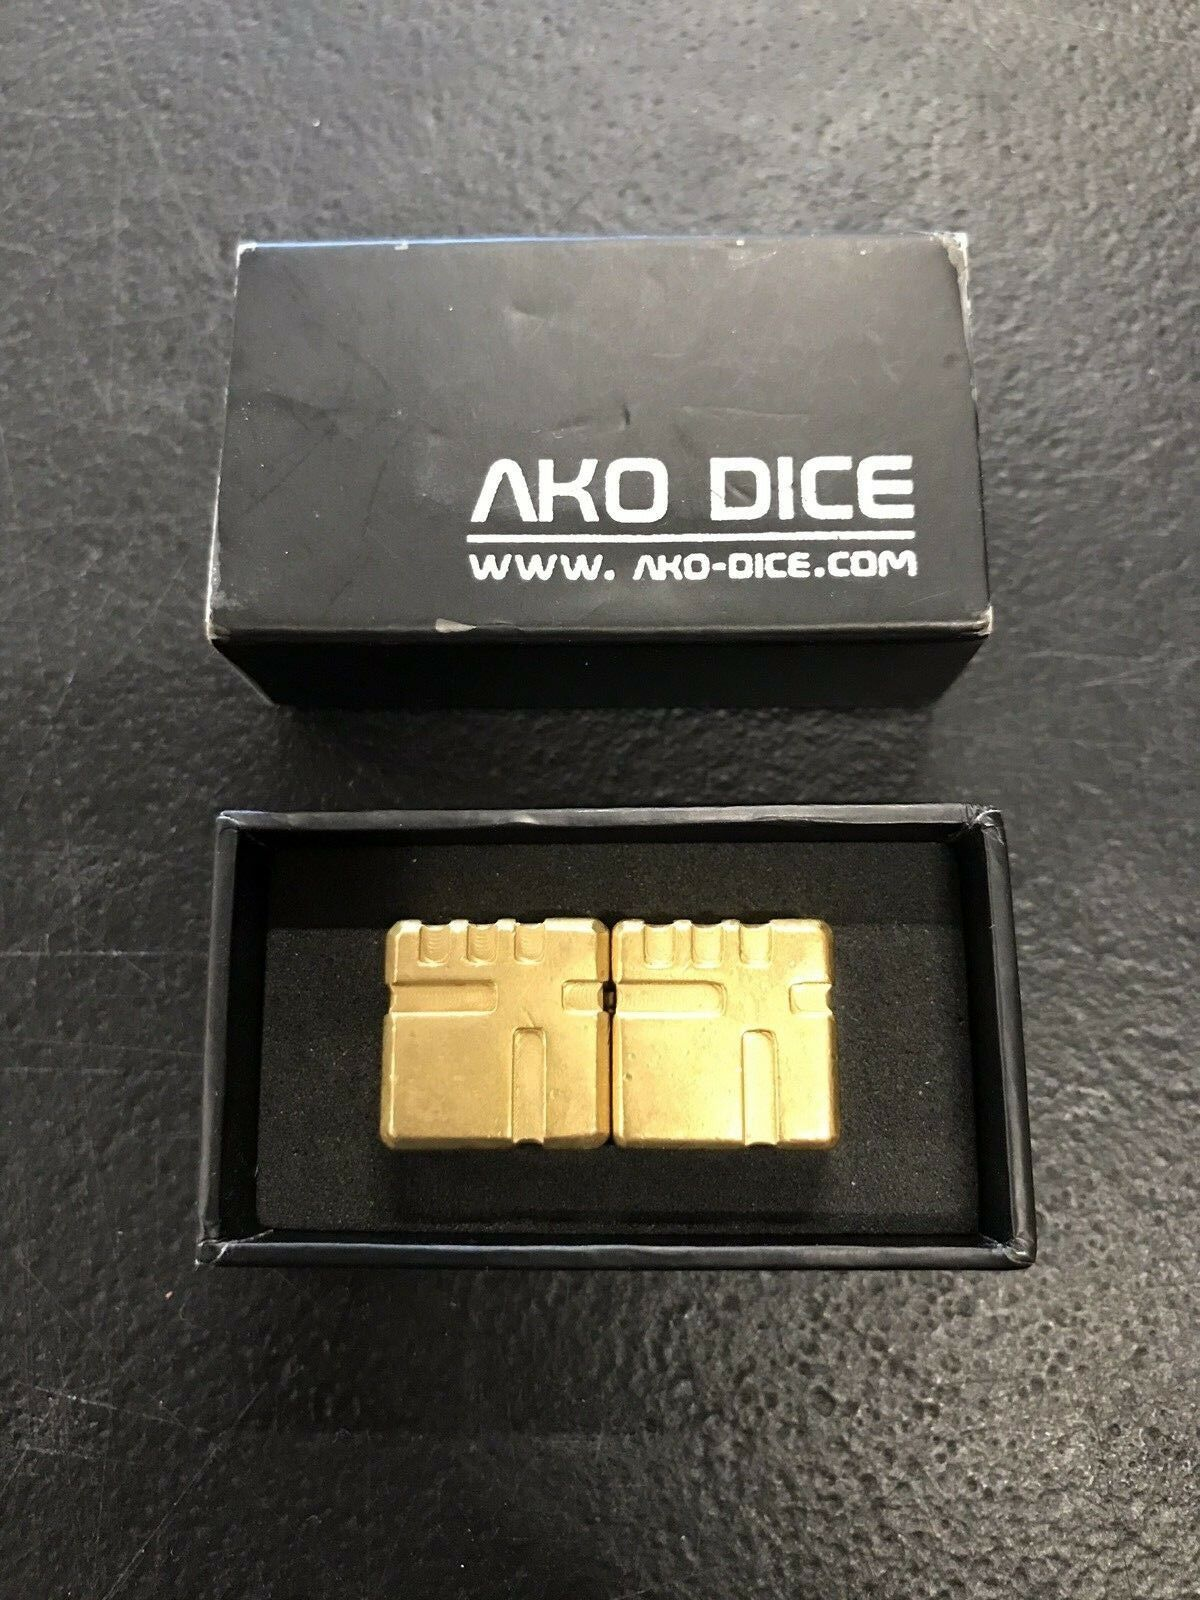 Six-Sided Metal AKO gold Dice Box Set